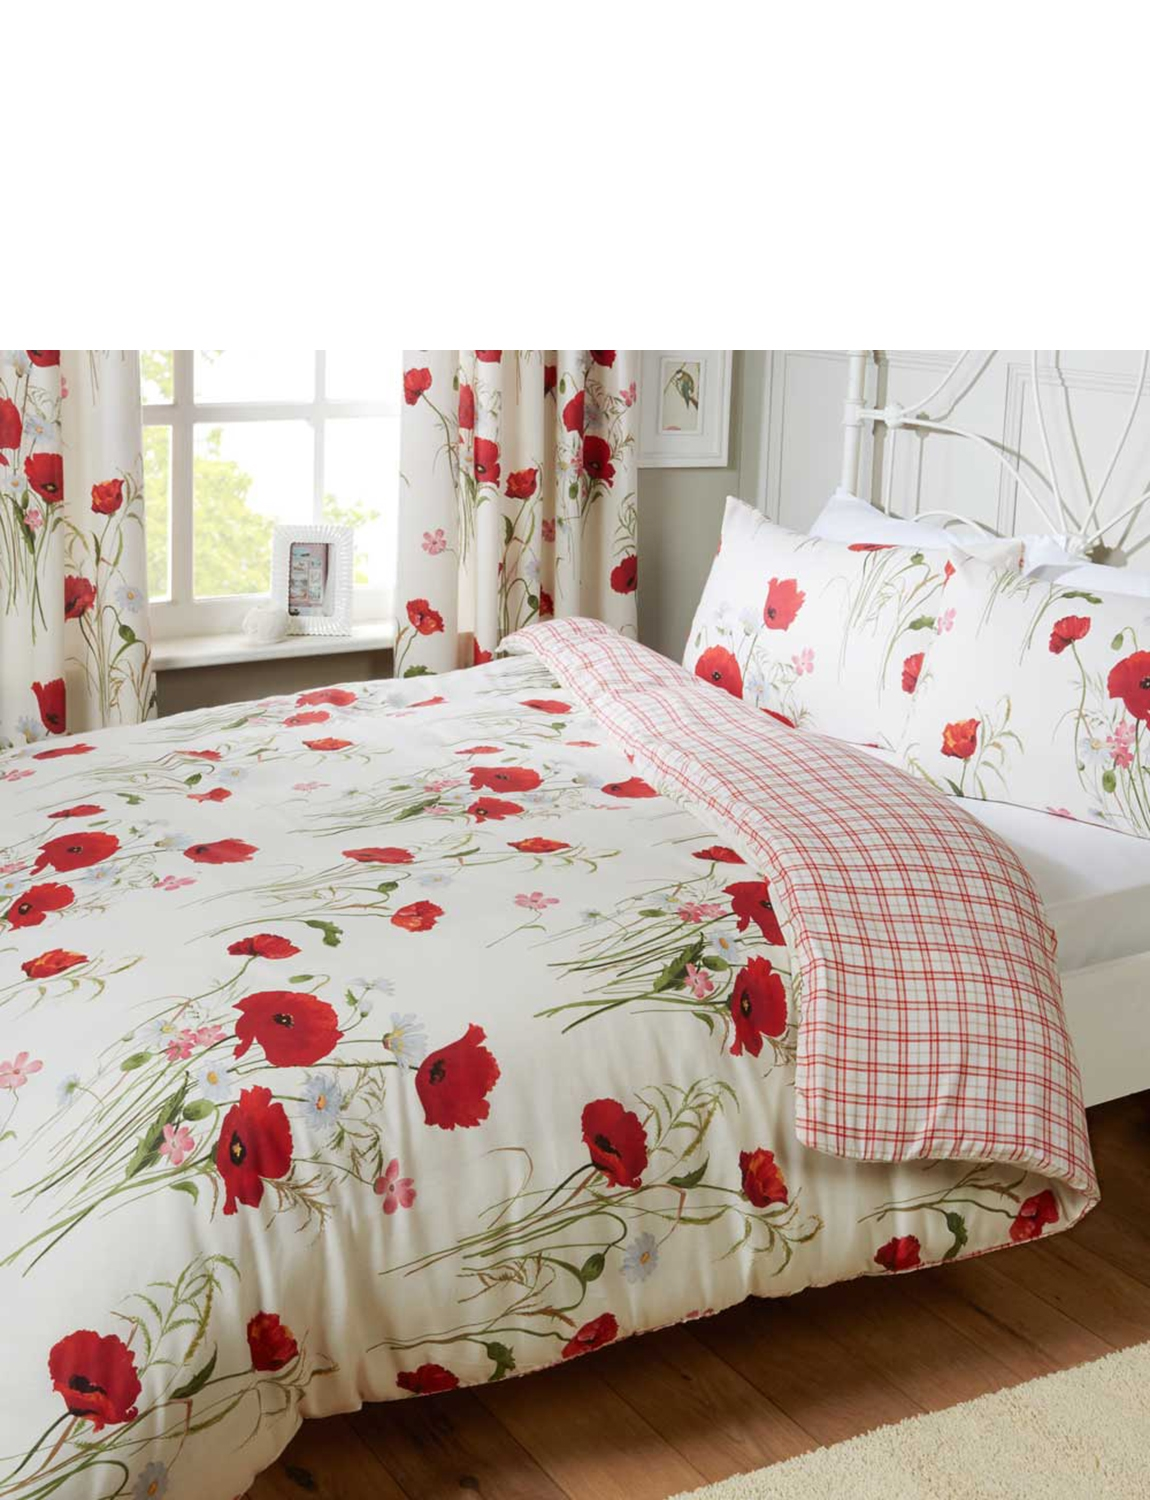 Wild Poppies Quilt Cover & Pillowcase Set By Catherine ...